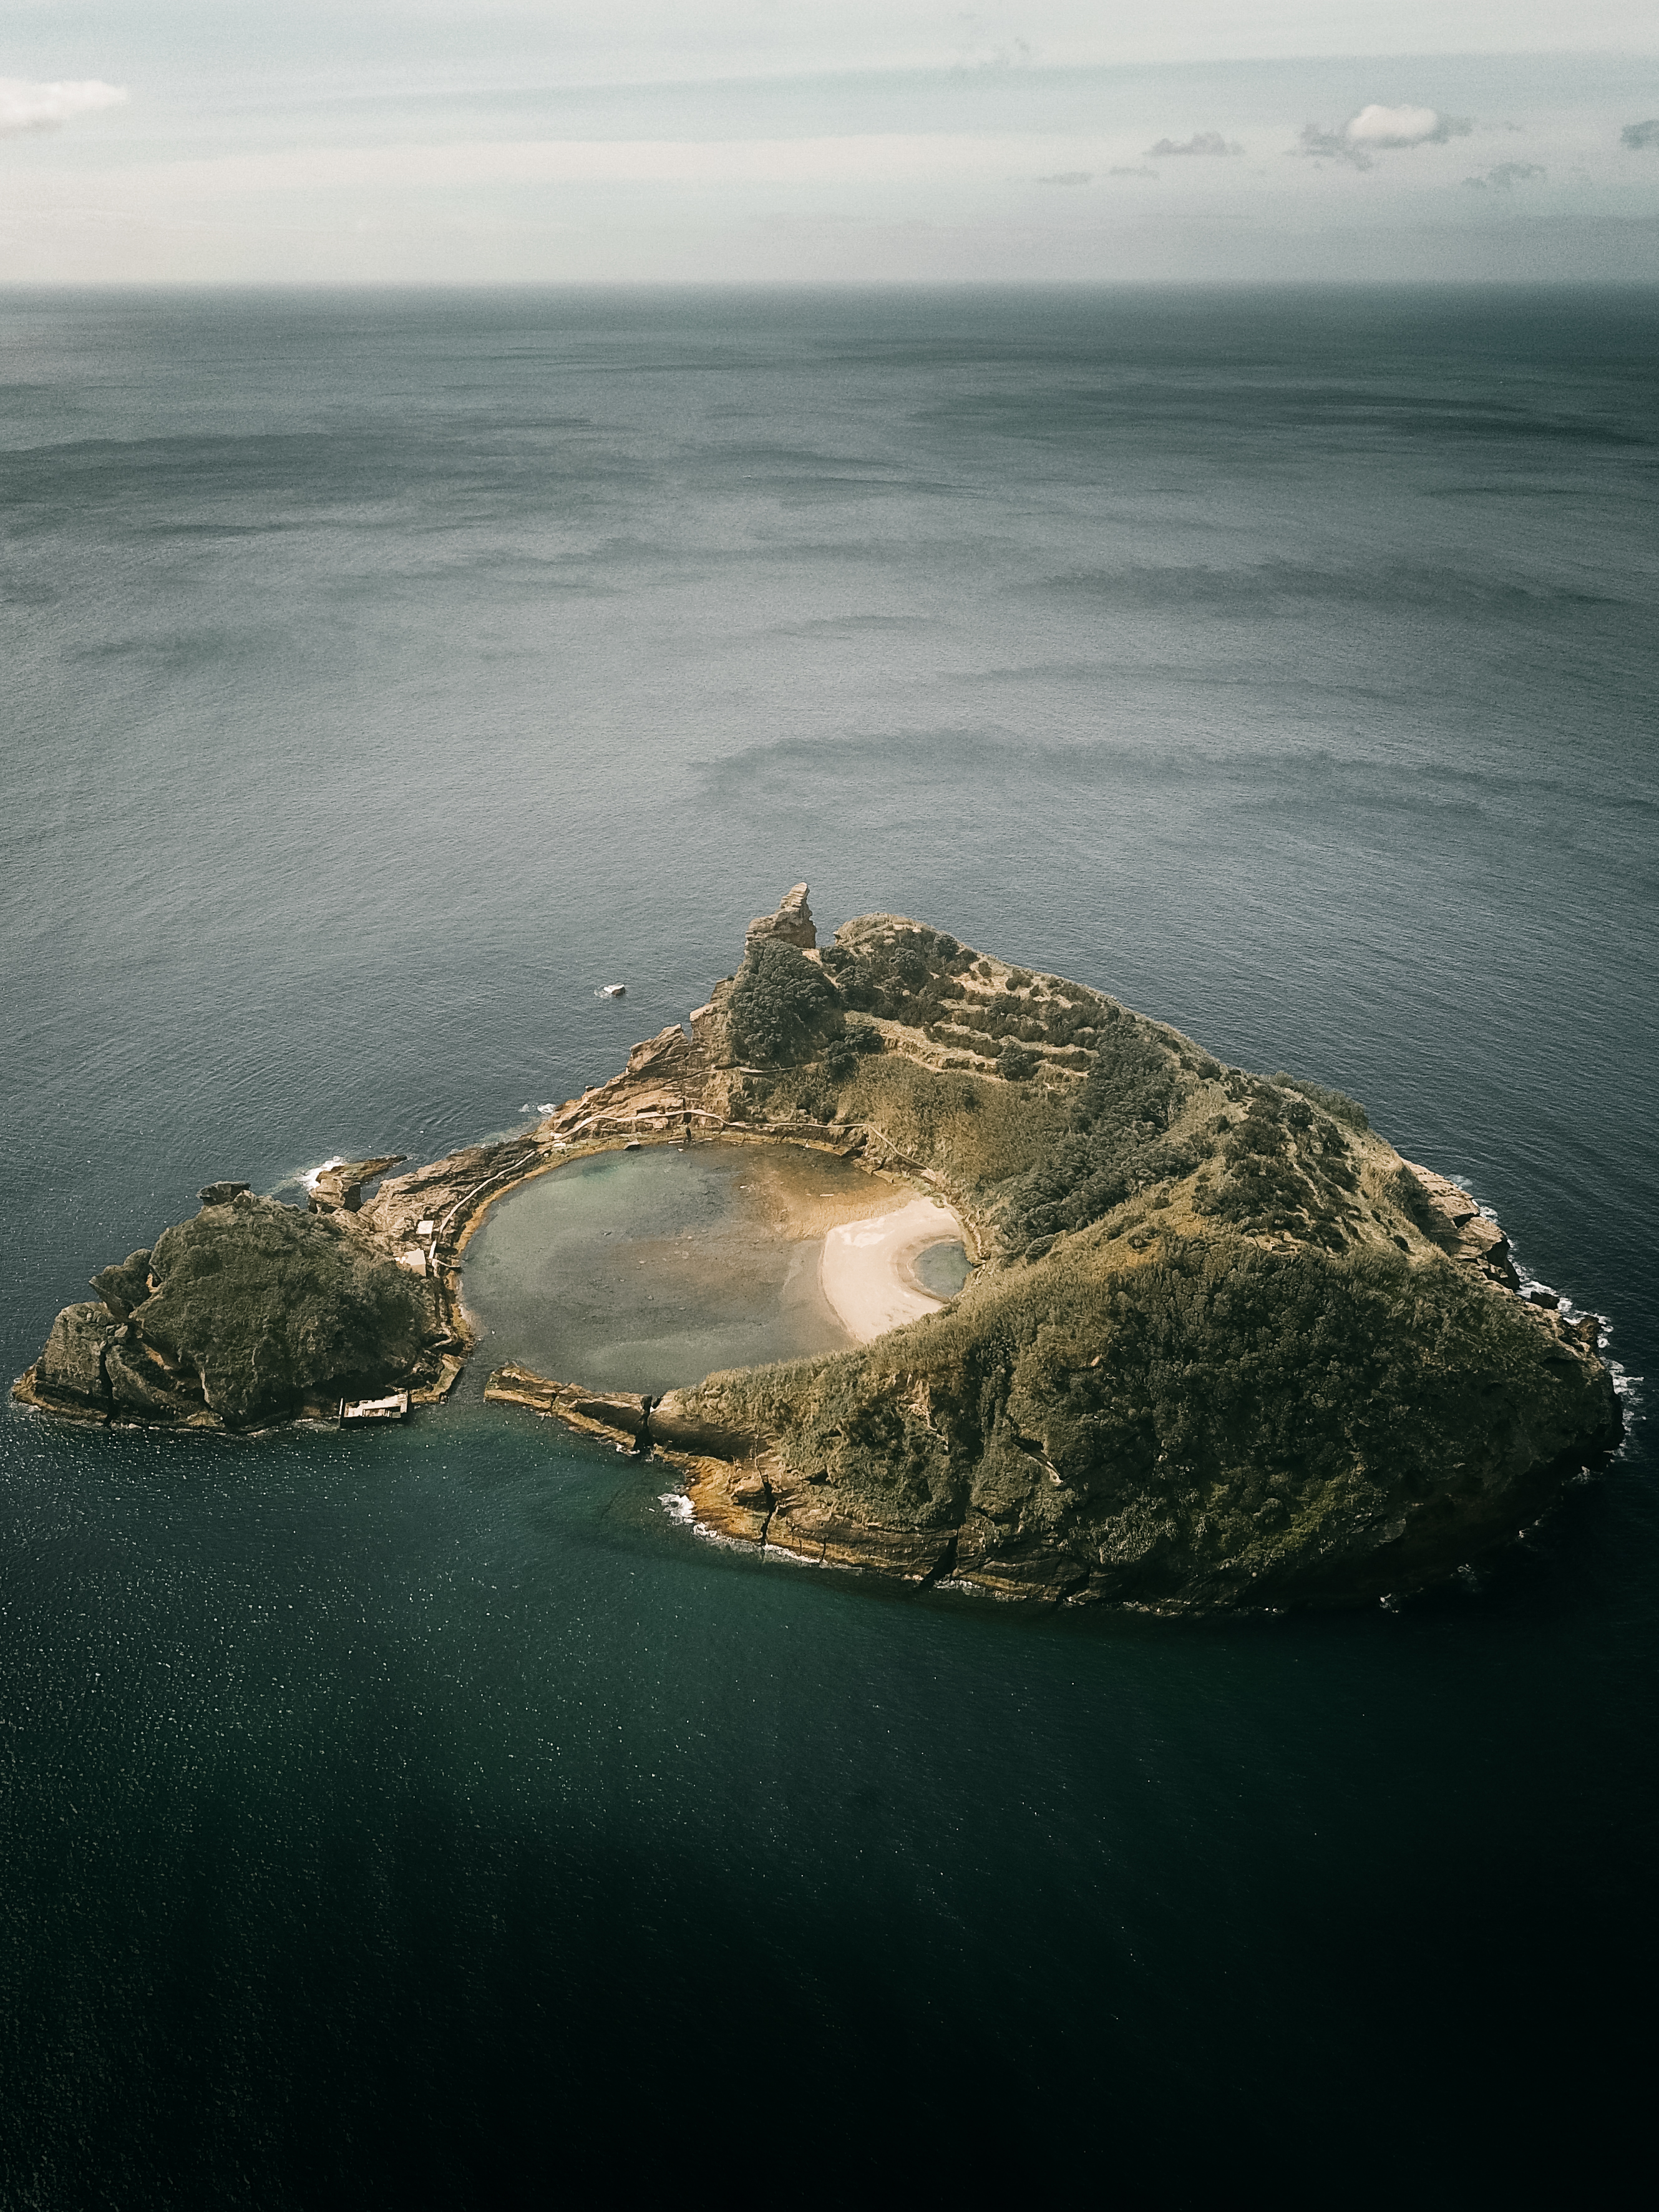 aerial view of island in the middle of ocean